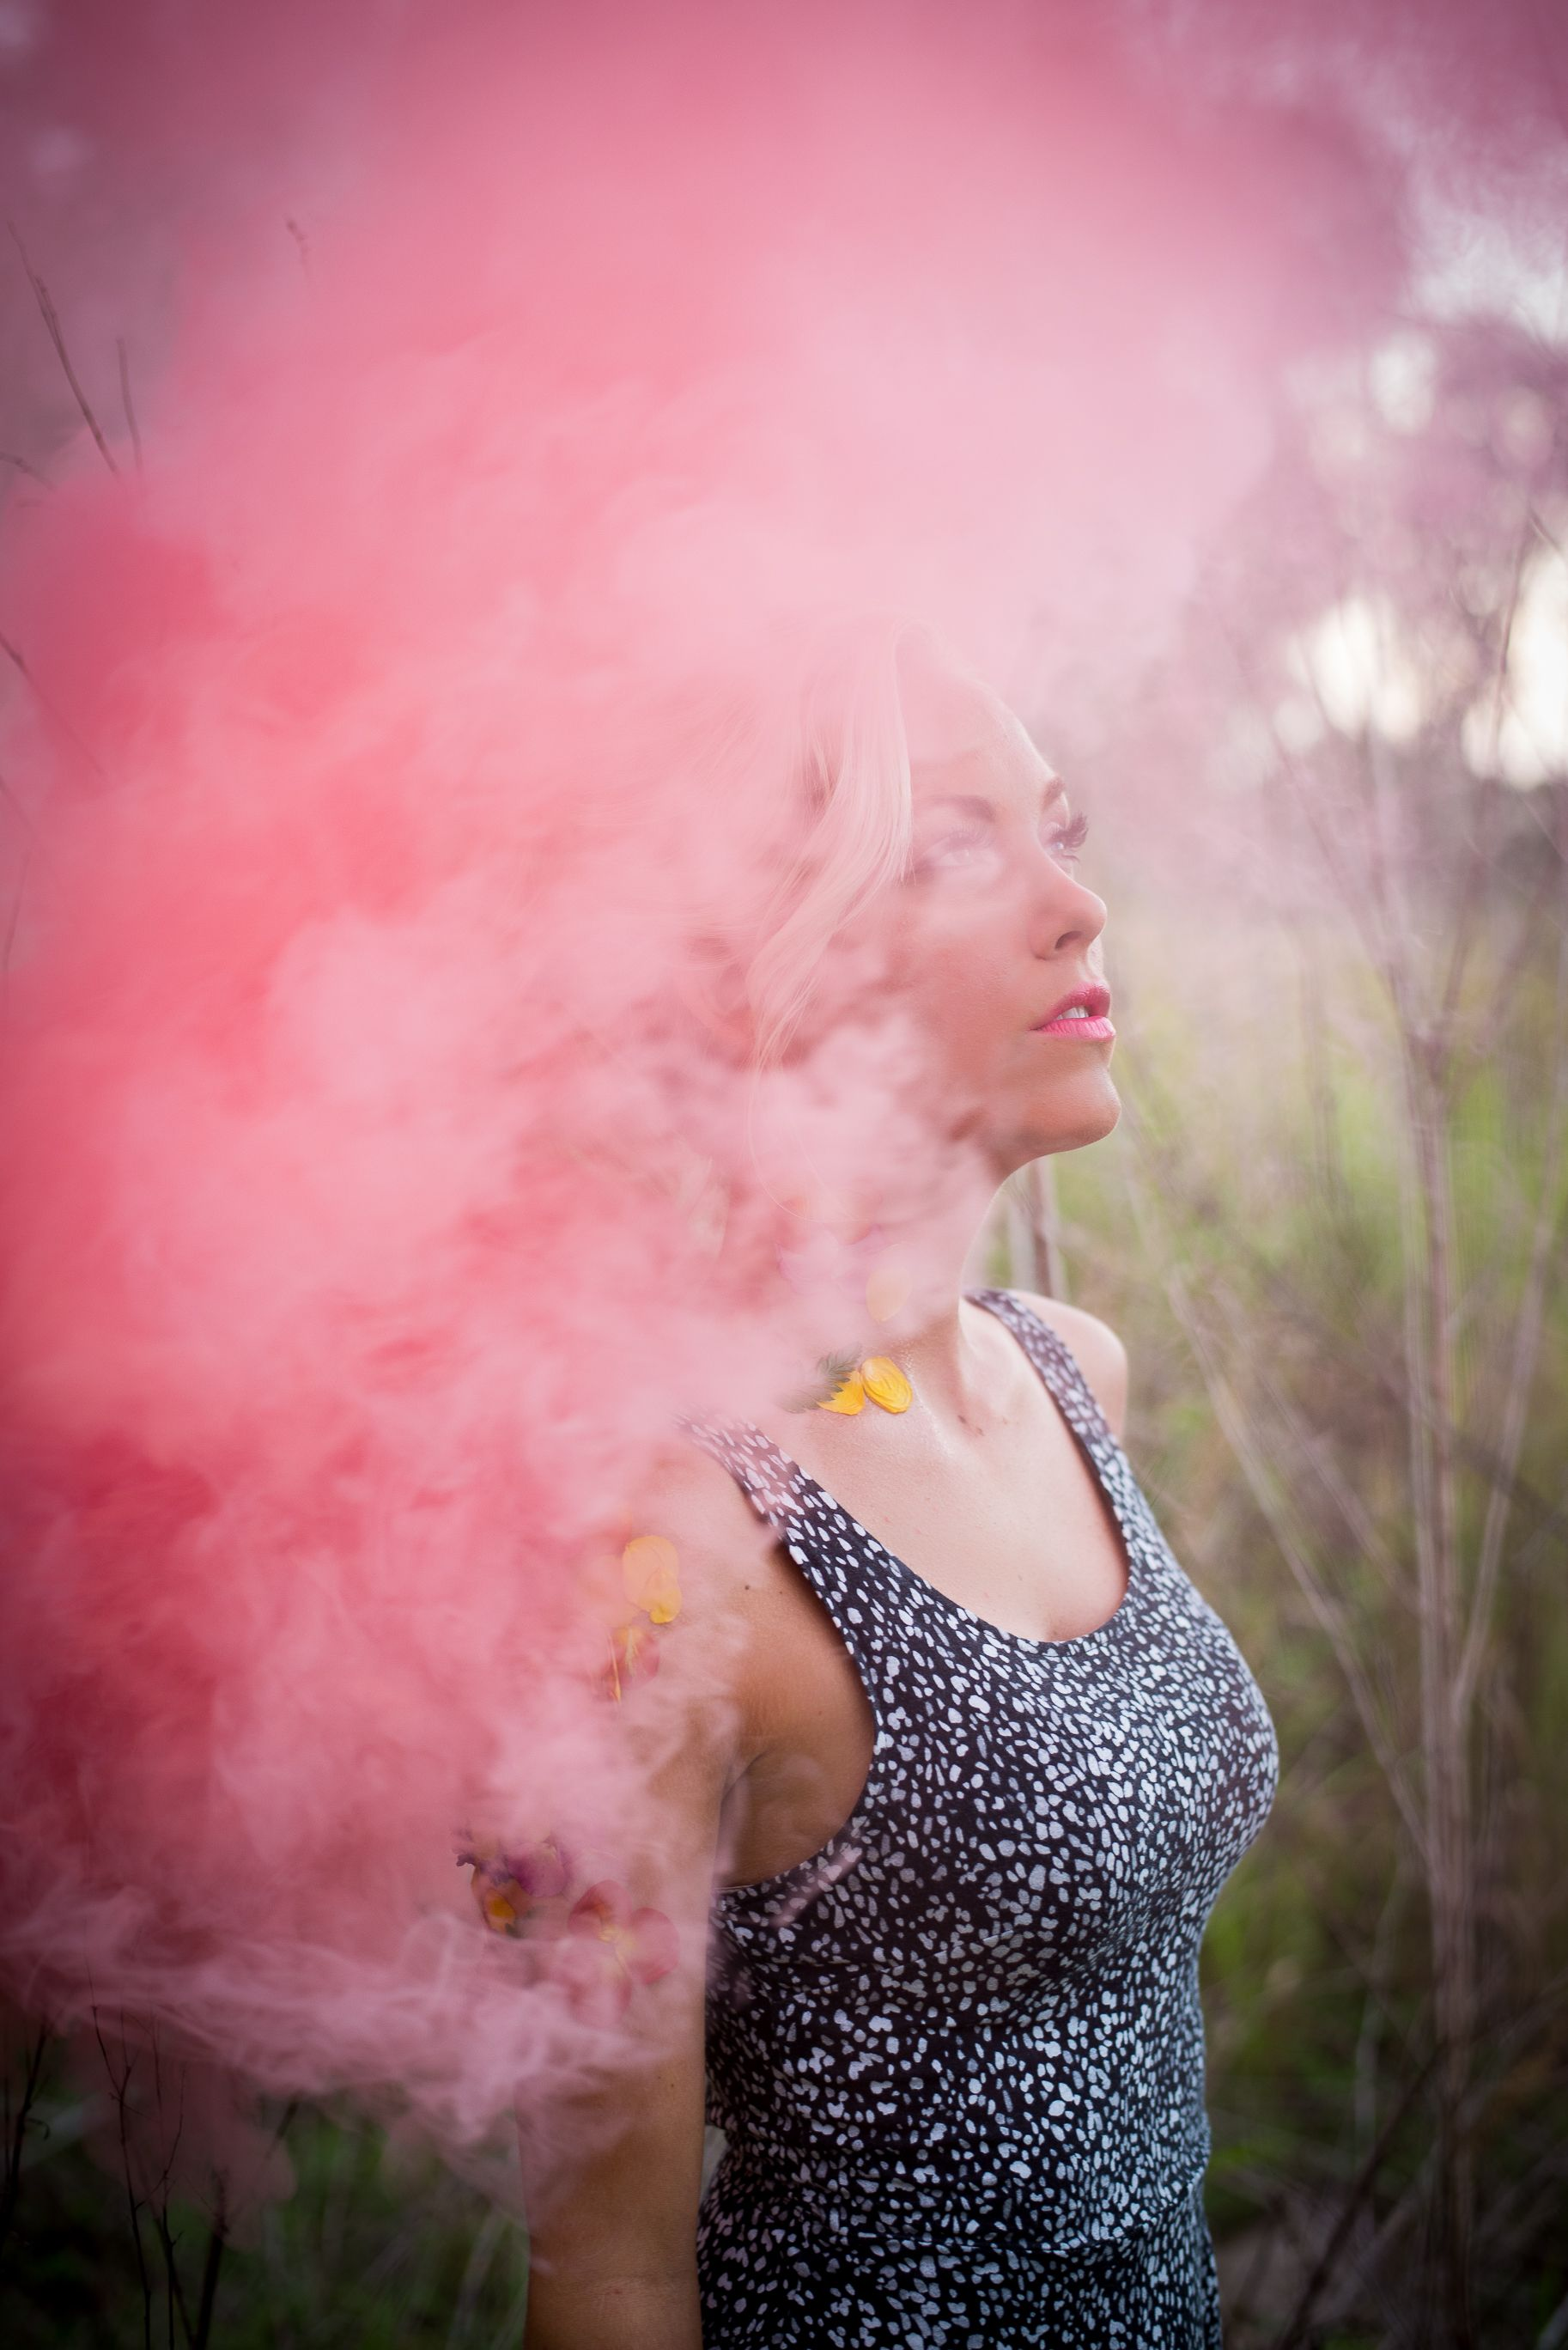 Dahlberg Photography - senior pictures- pink smoke bomb - smoke bomb ...